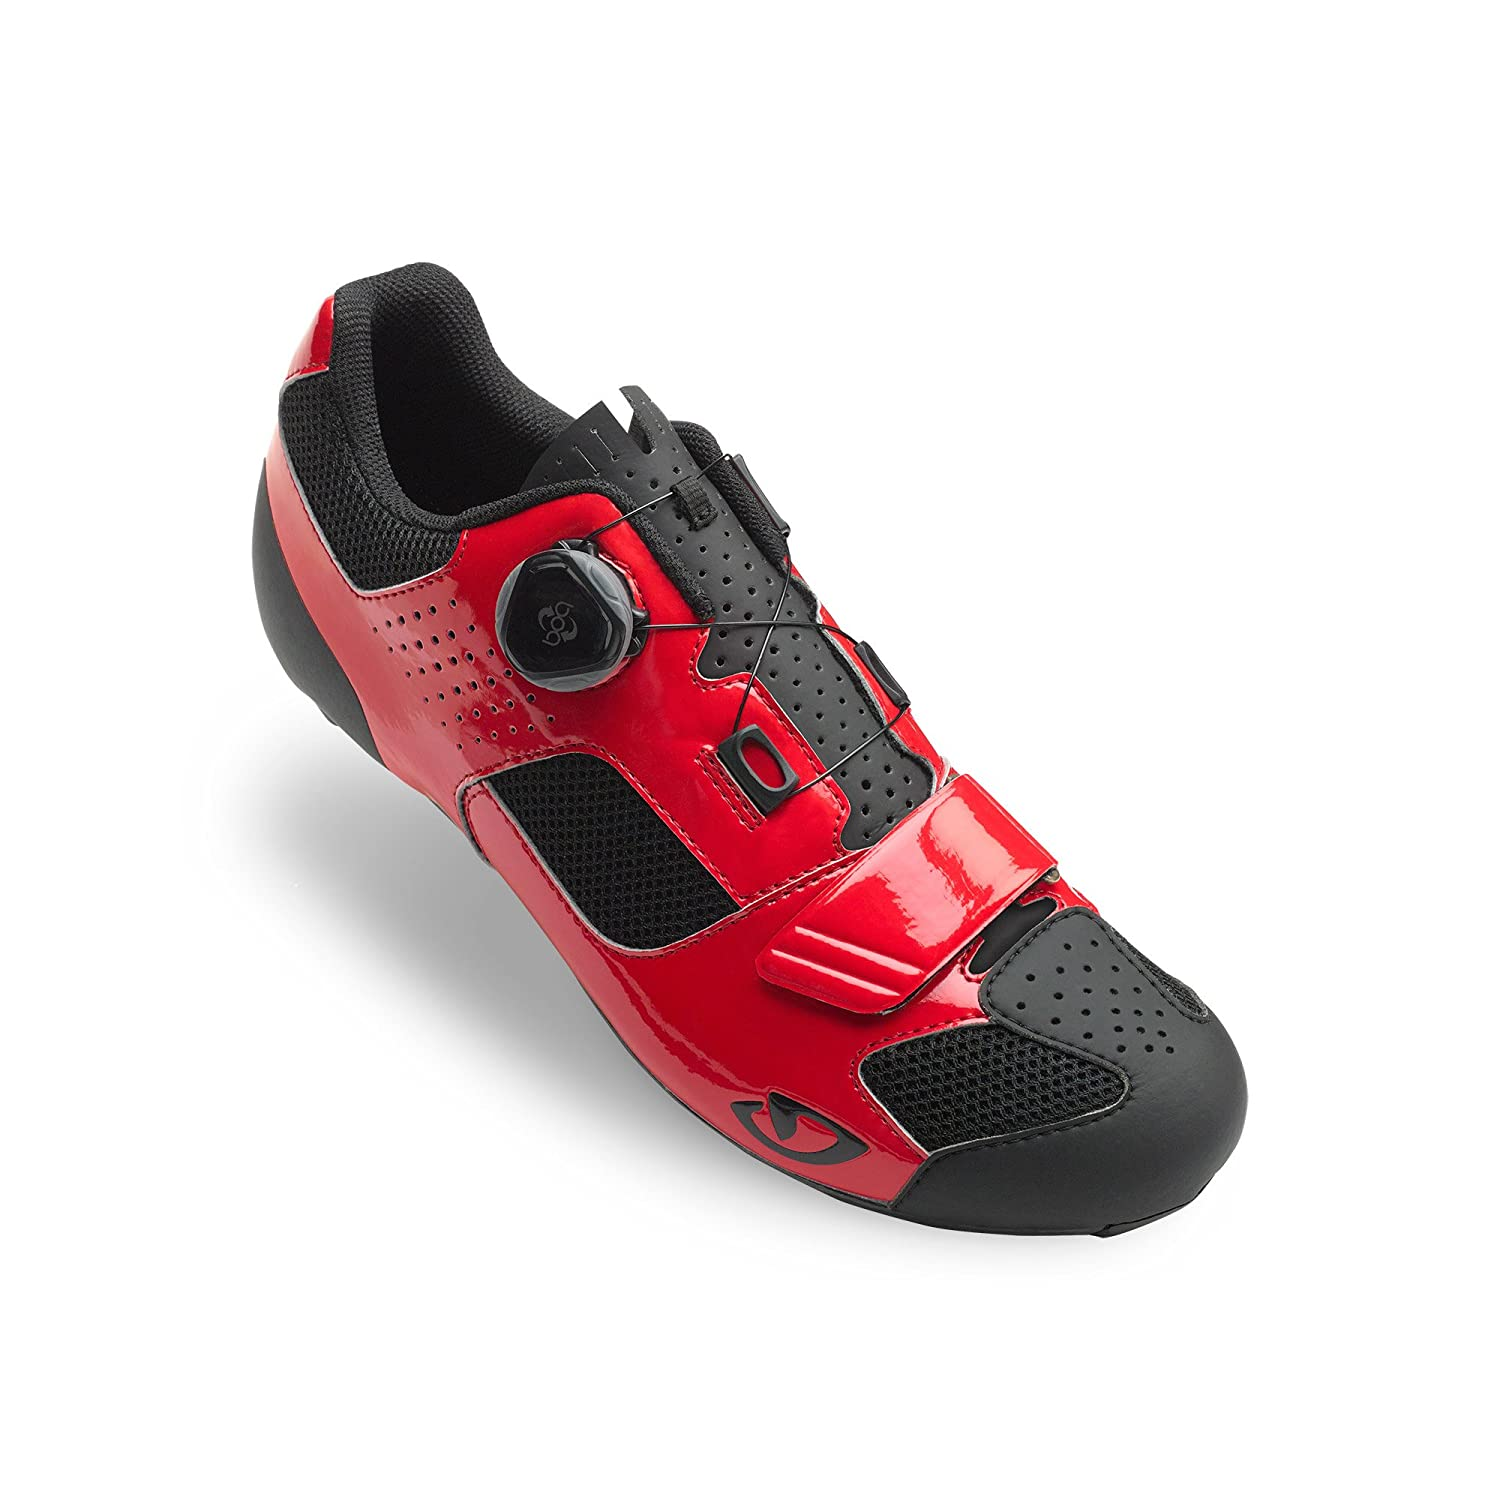 Trans Boa Matte Red Black Road Bike Shoes Size 39